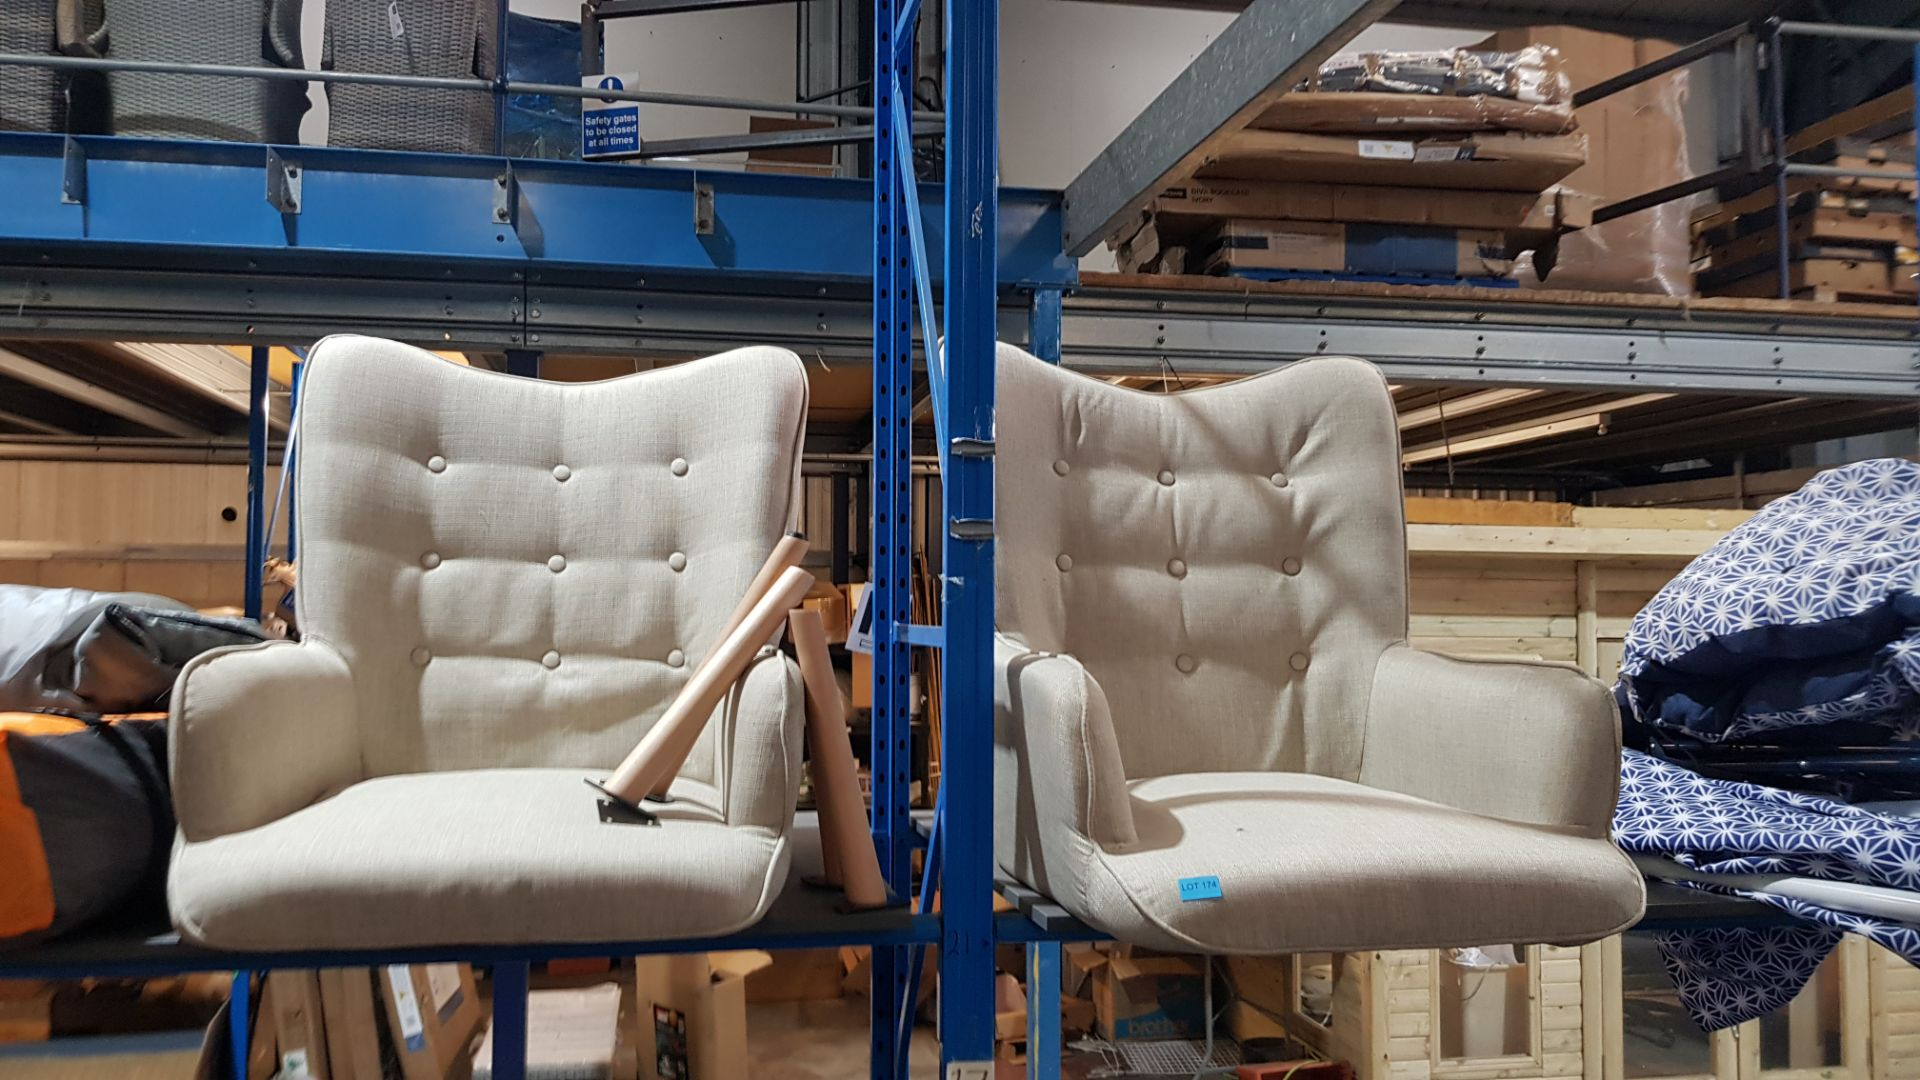 (2I) 2x Leon Beige Lounge Chairs (Only 1x Leg Set With This Lot). Both Units Appear Clean, Unused. - Image 3 of 7